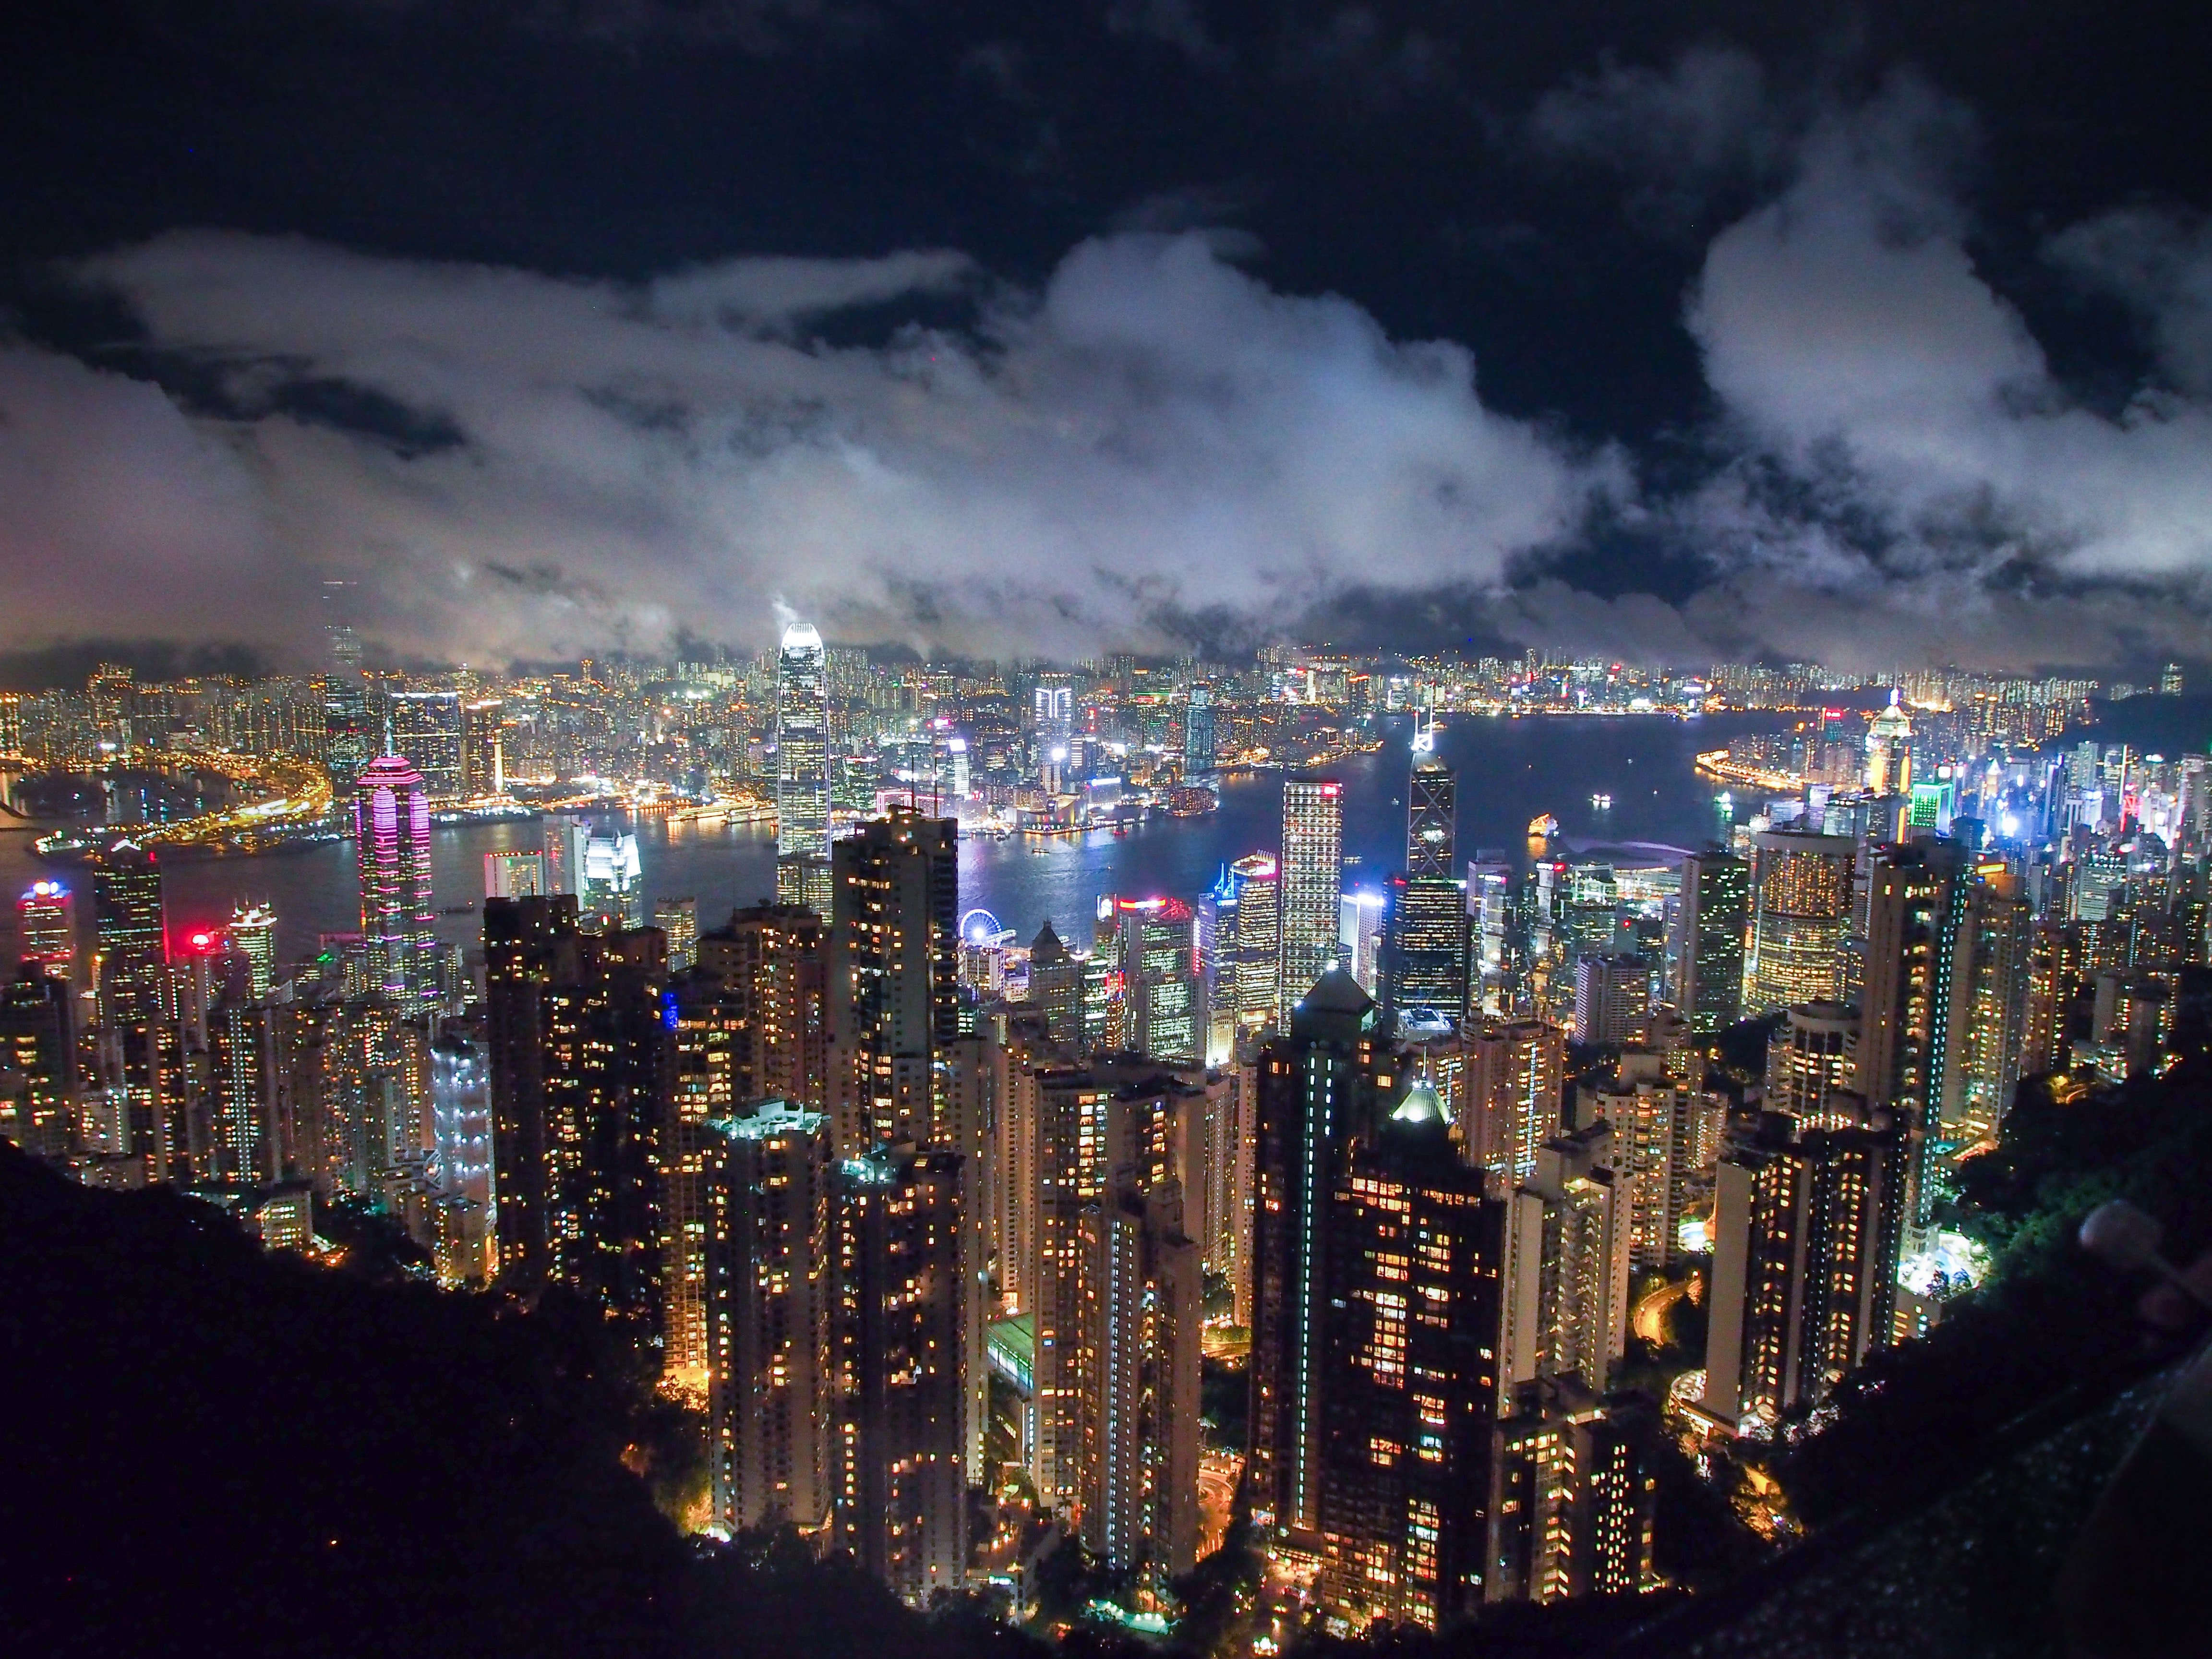 The intensely bright skyline of Hong Kong at night